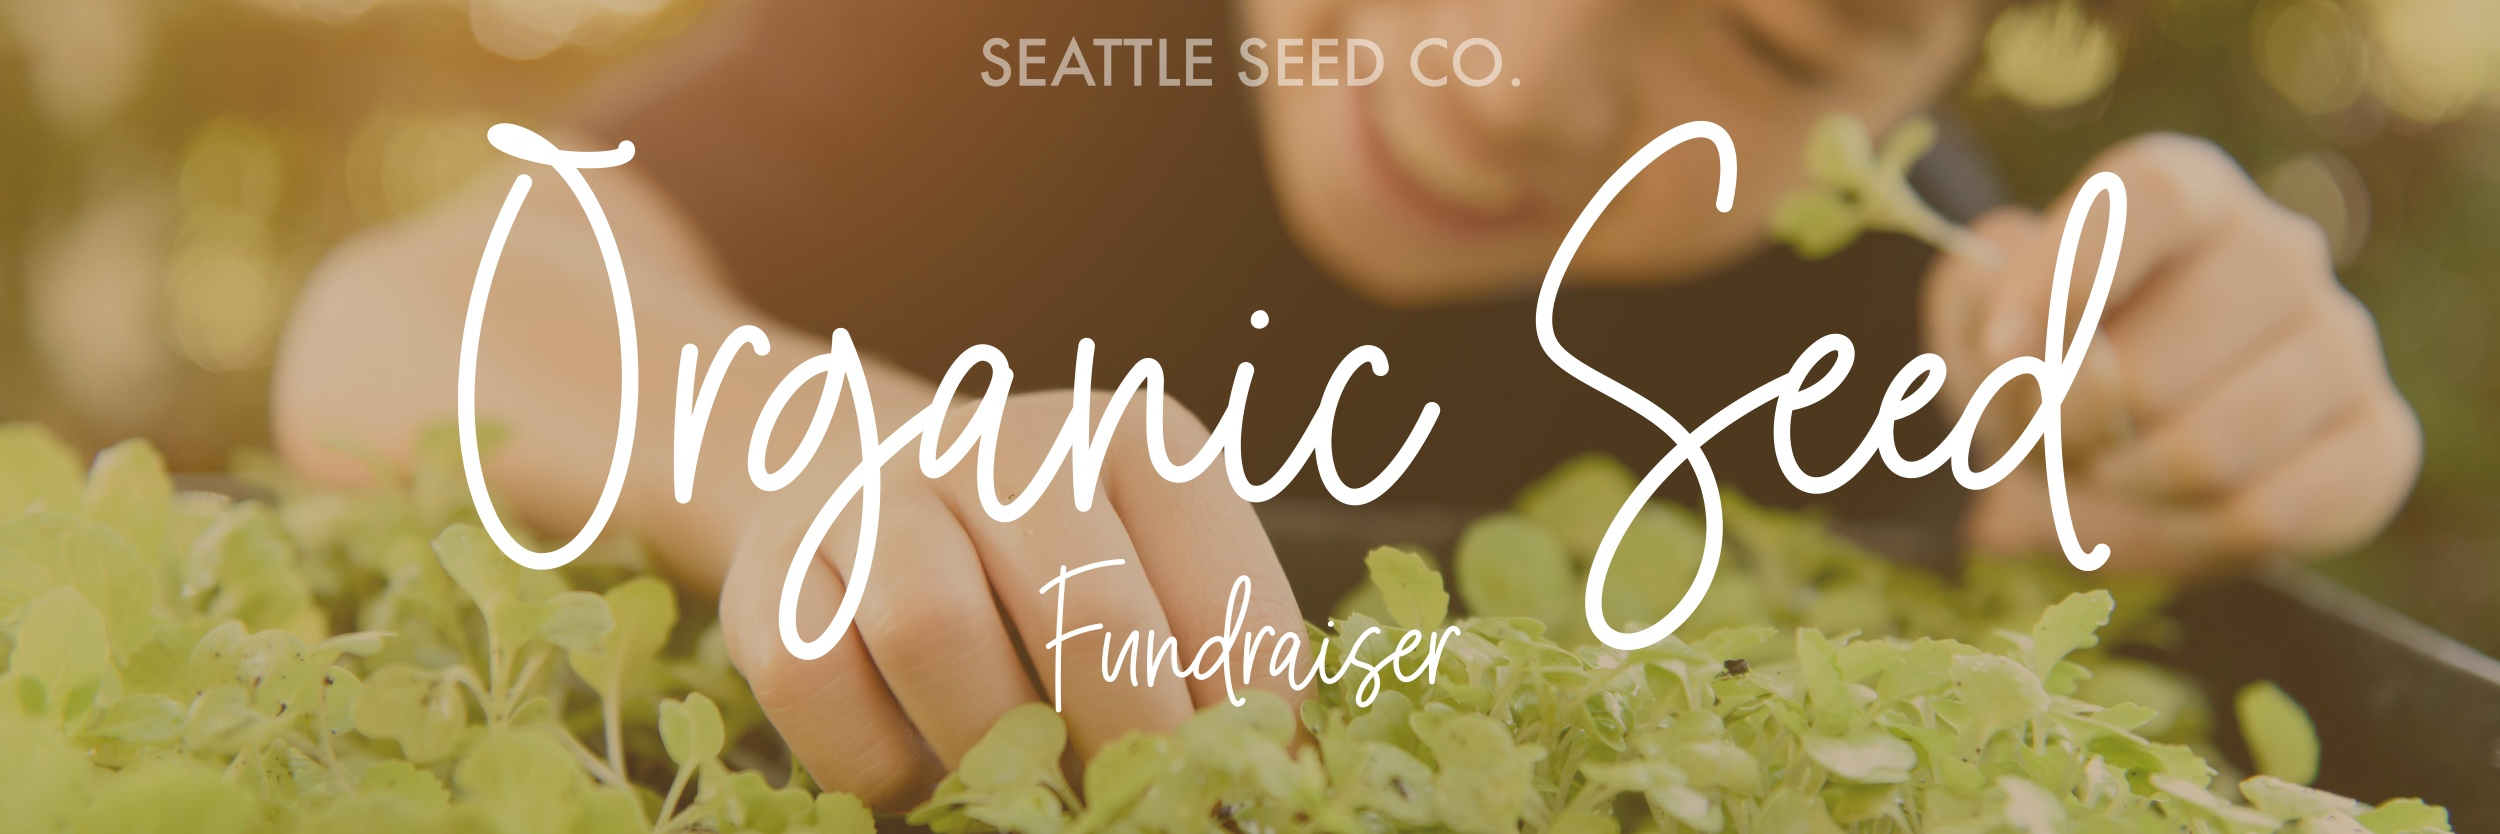 Seattle Seed Company Fundraiser